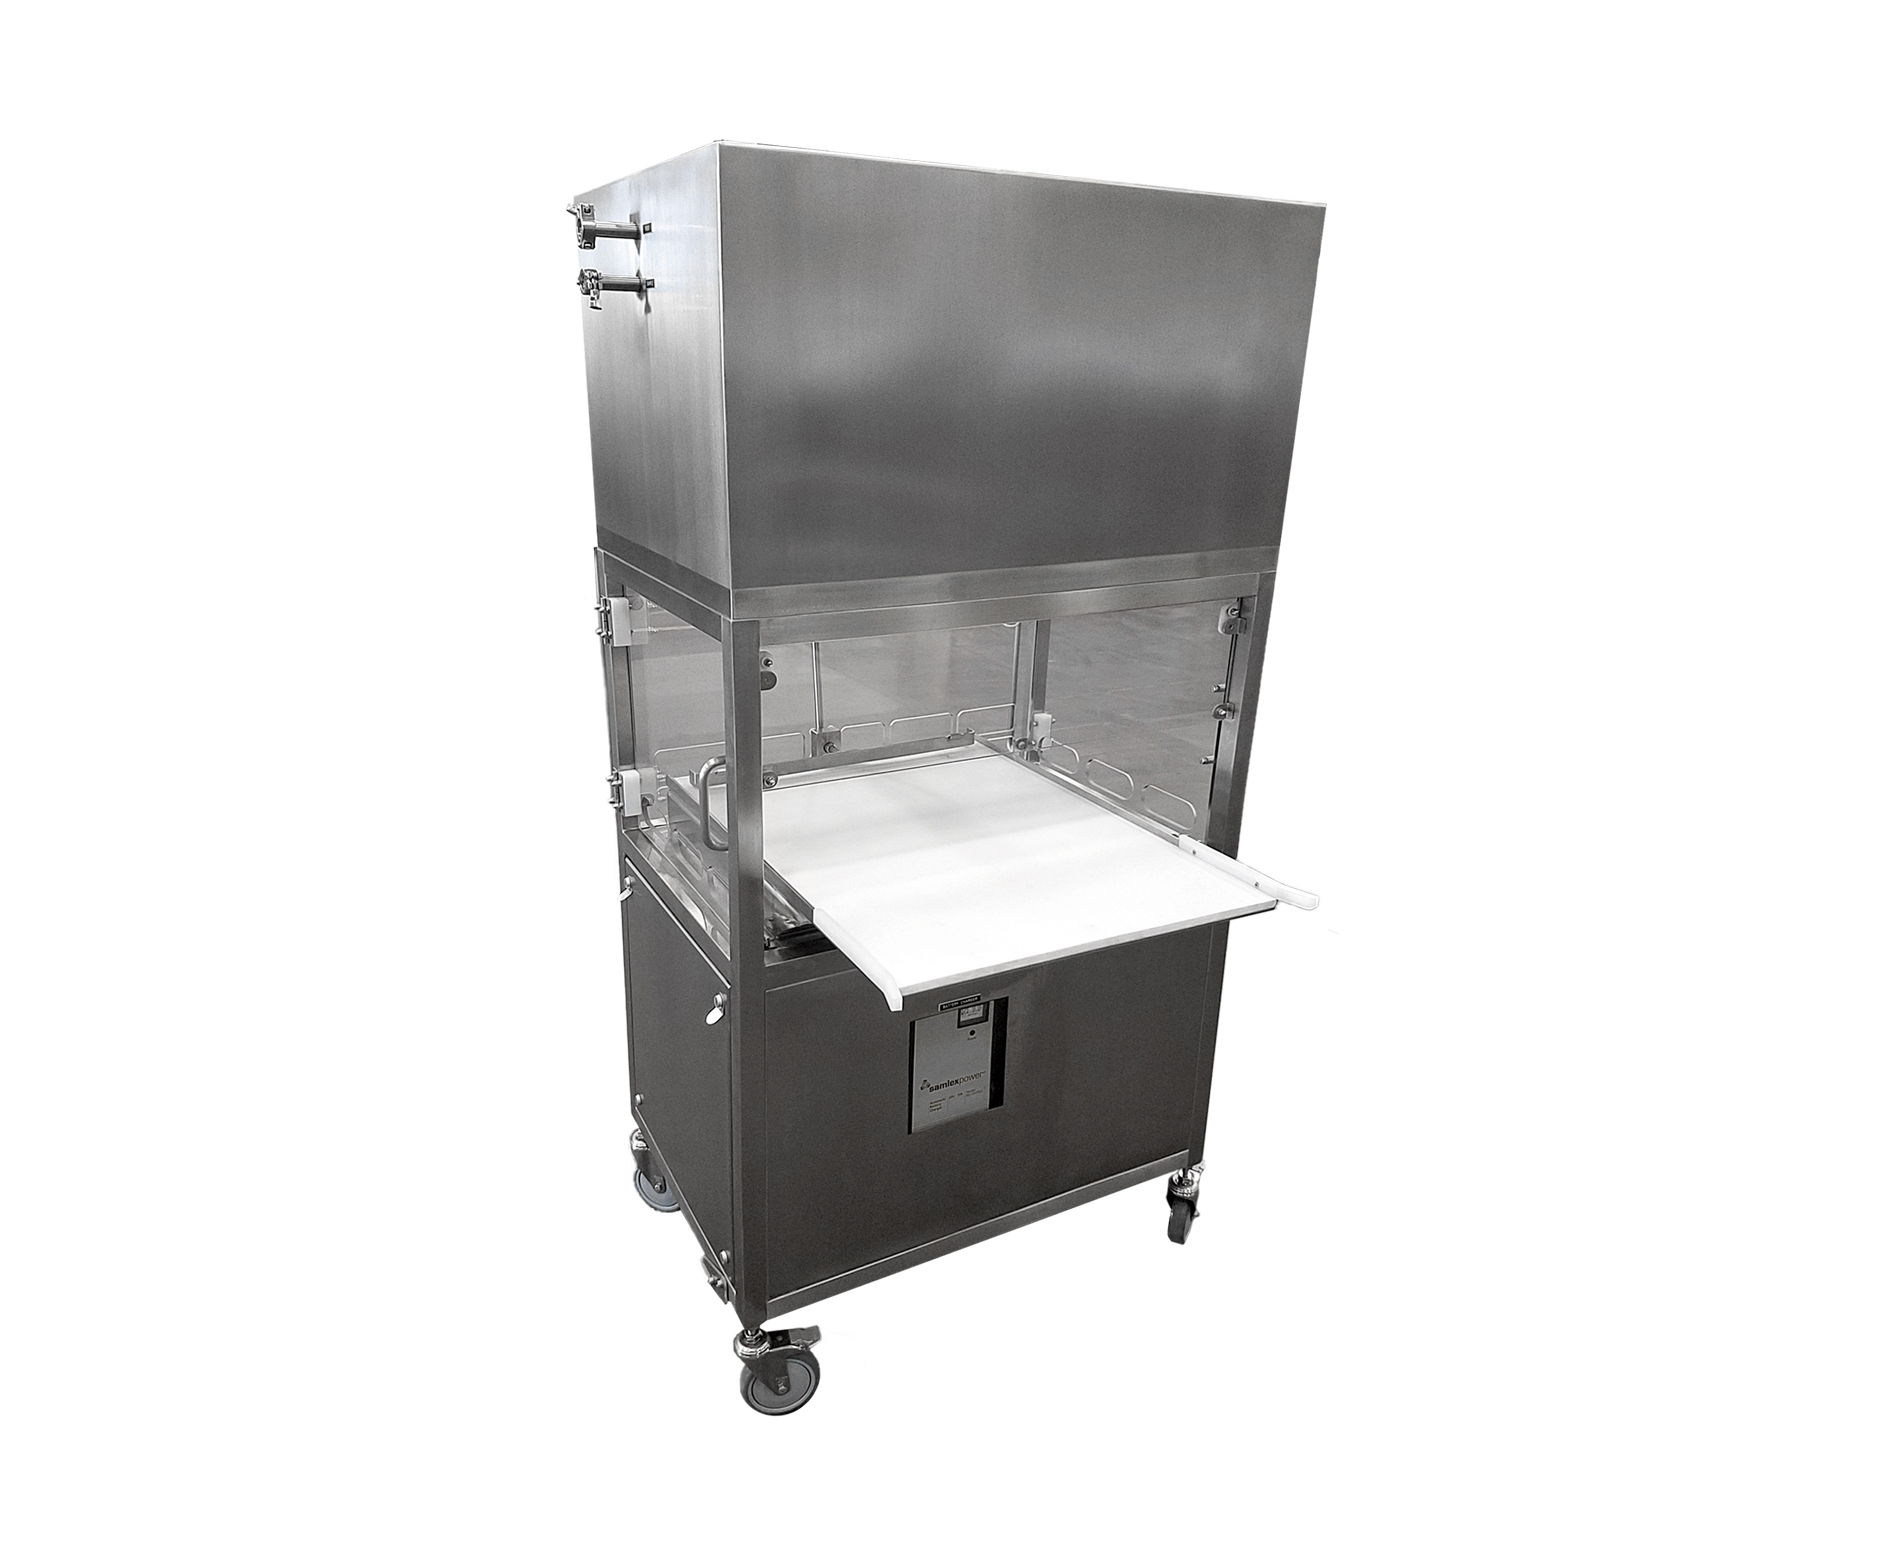 LFU CART2 1 - Containment Systems